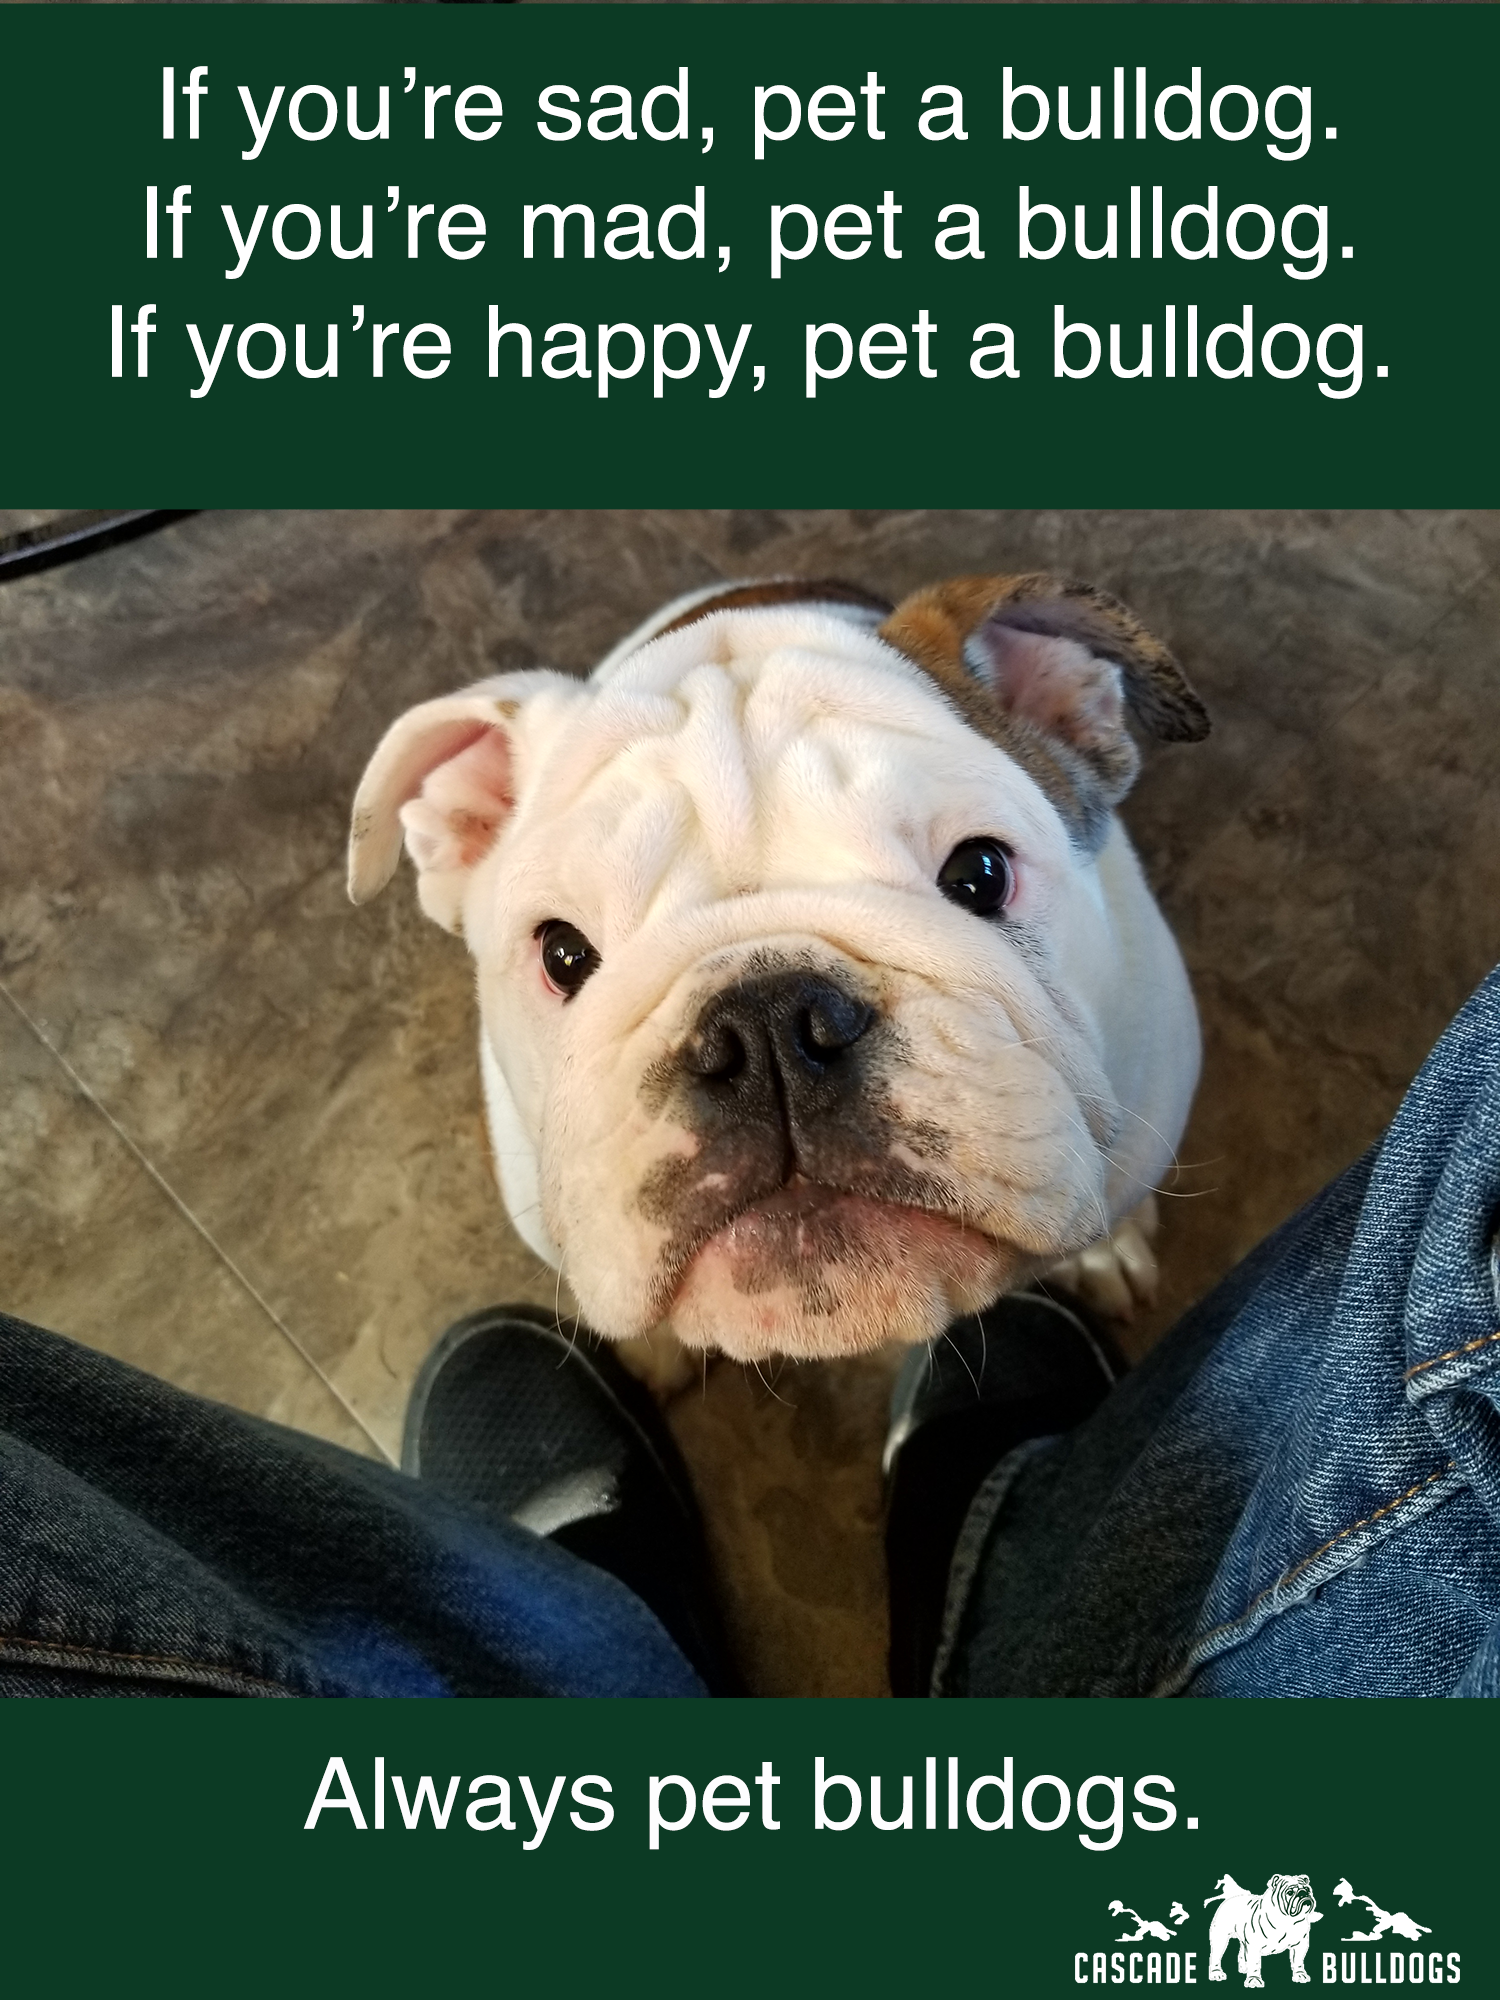 Bulldog Quotes Always Pet Bulldogs Httpcascadebulldogs  Bulldog